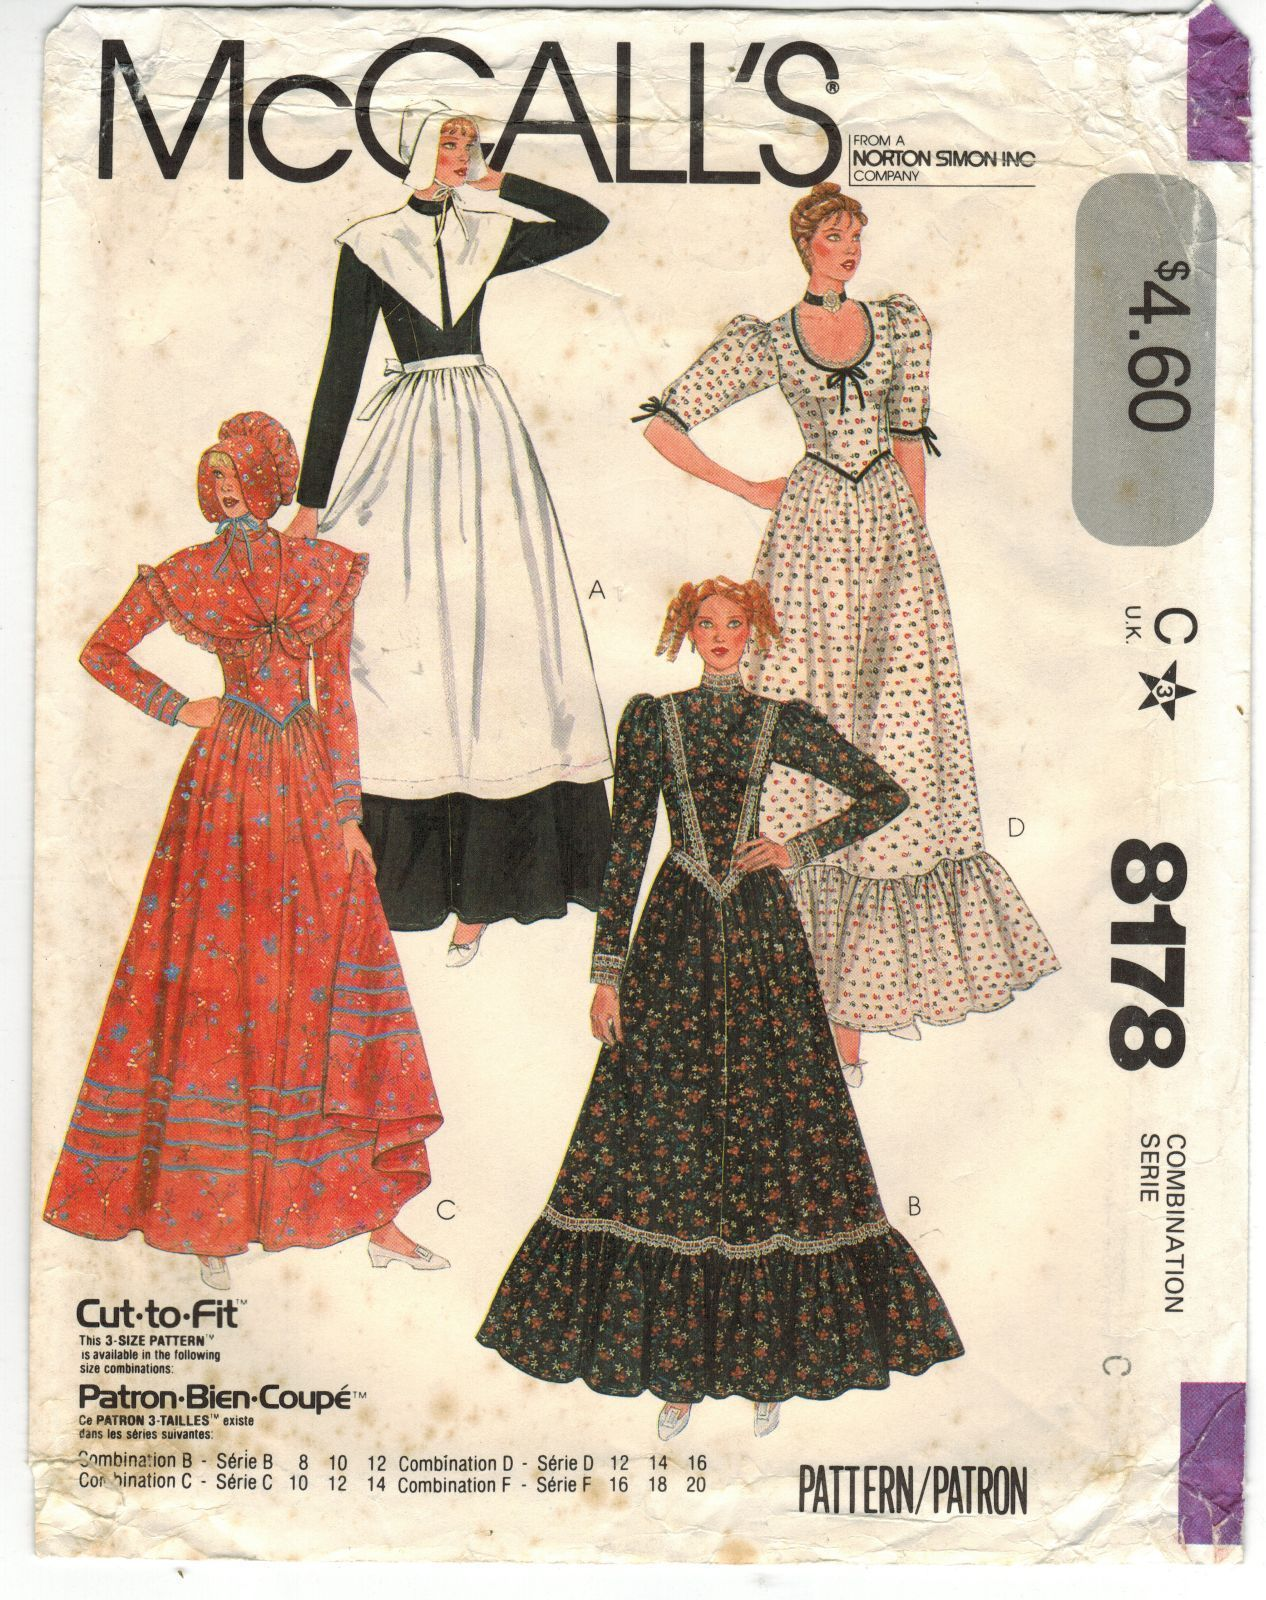 Clothing Styles Dress Patterns Sewing New Look Period House